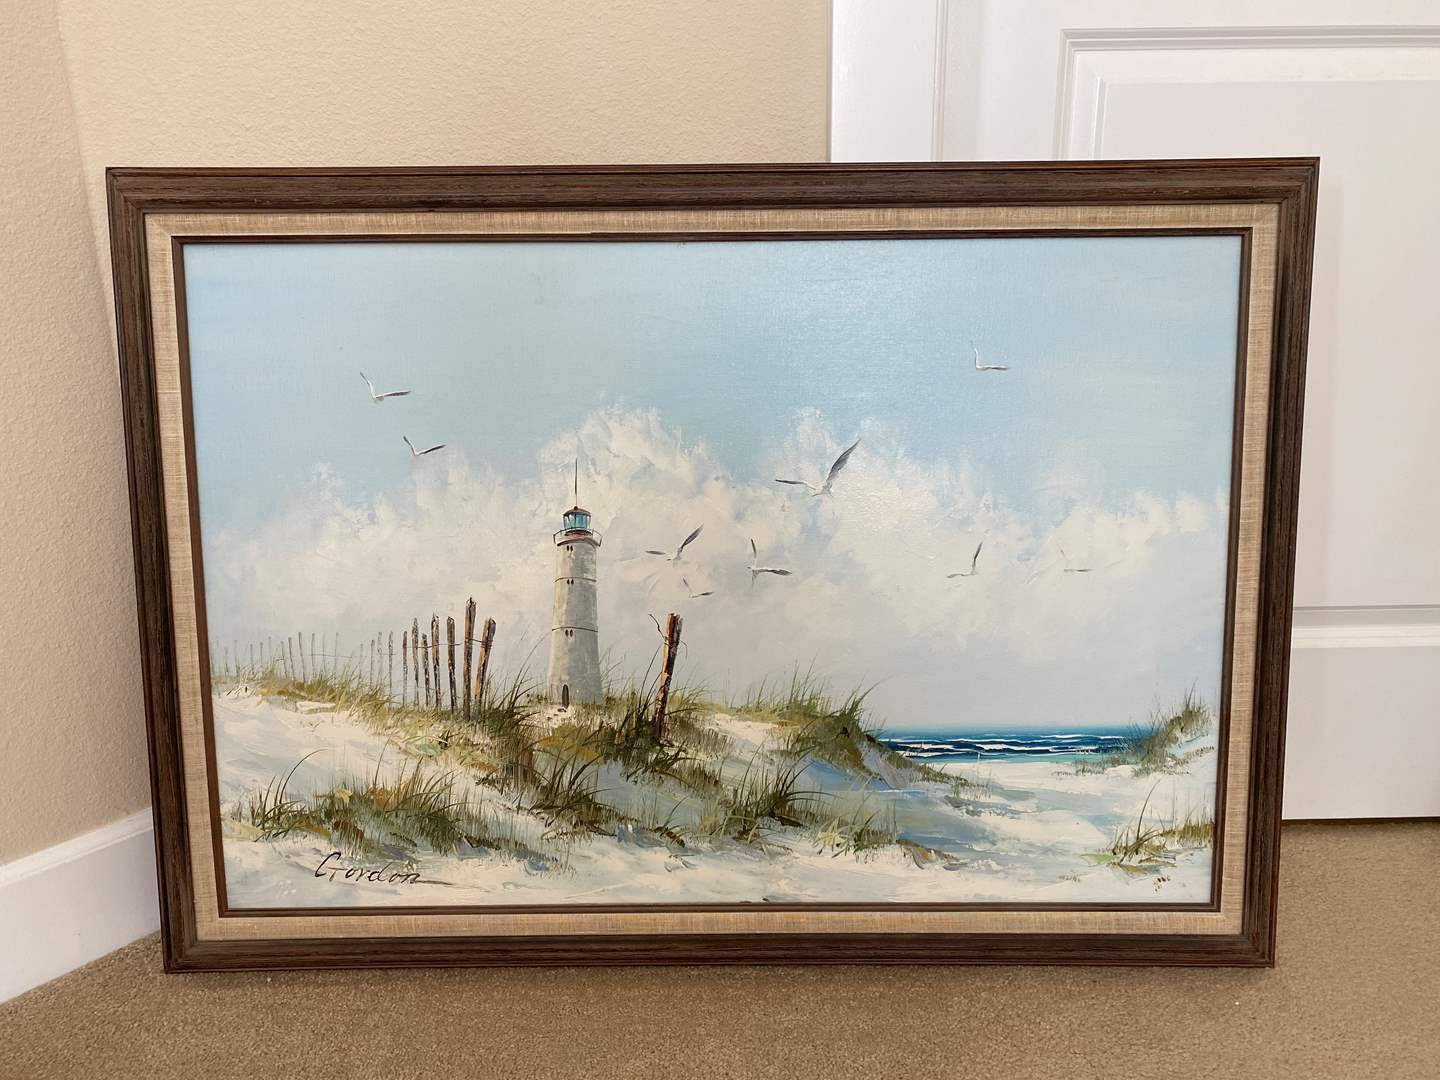 Lot # 40 - Large Original Oil on Canvas Seaside Painting by Gordon (main image)